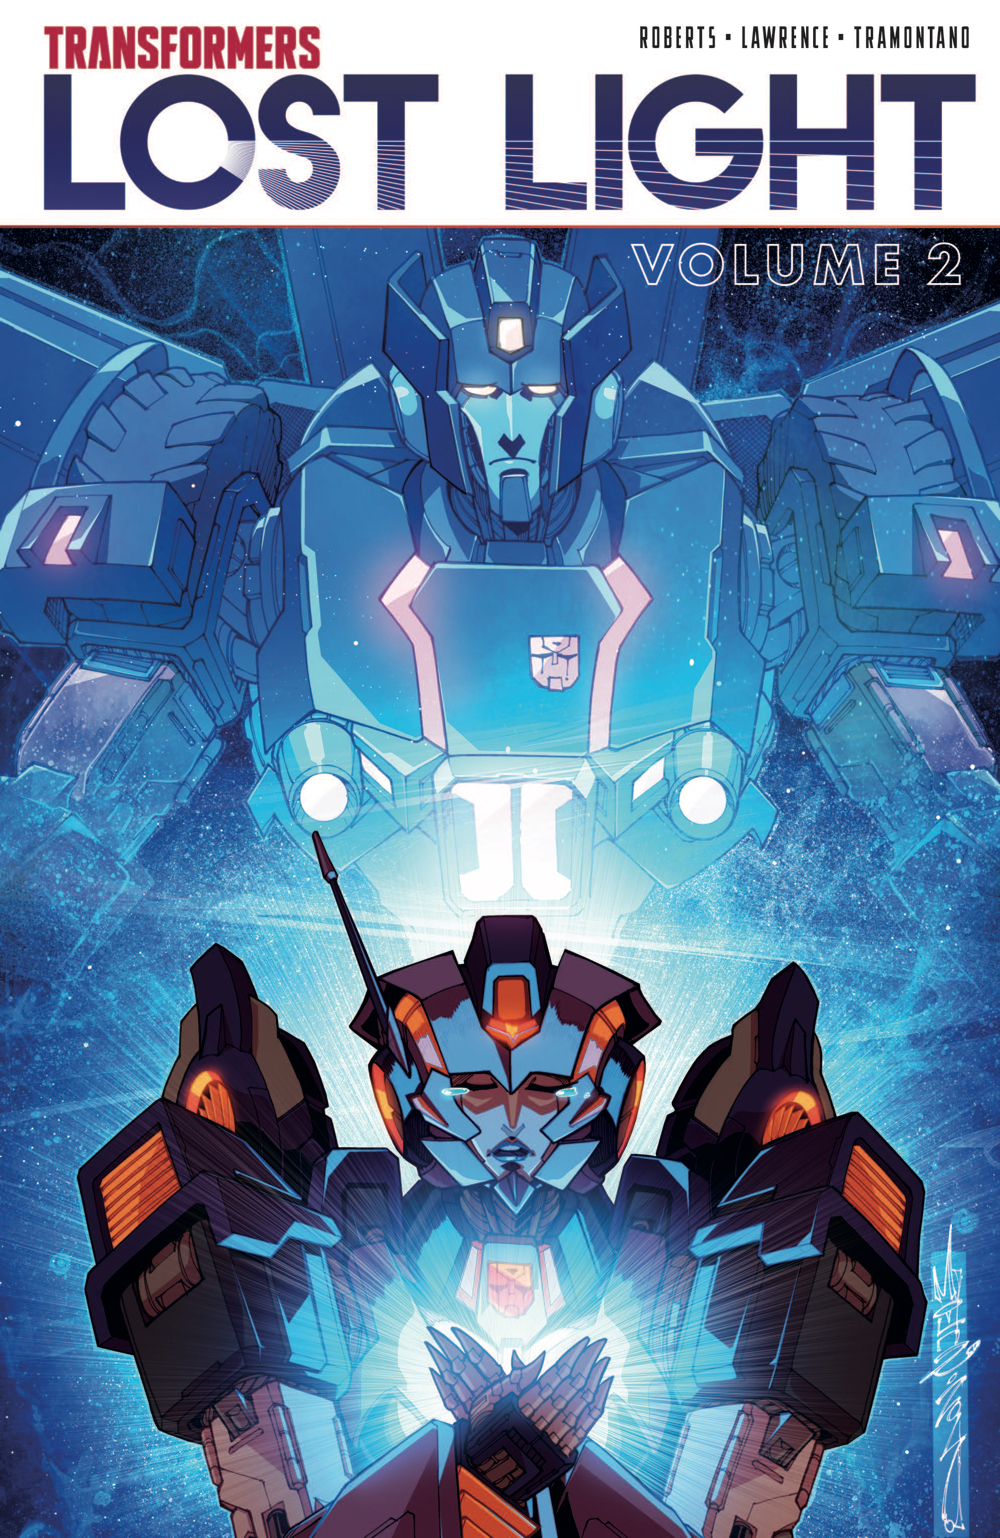 TRANSFORMERS LOST LIGHT TP VOL 02 (DEC170461)